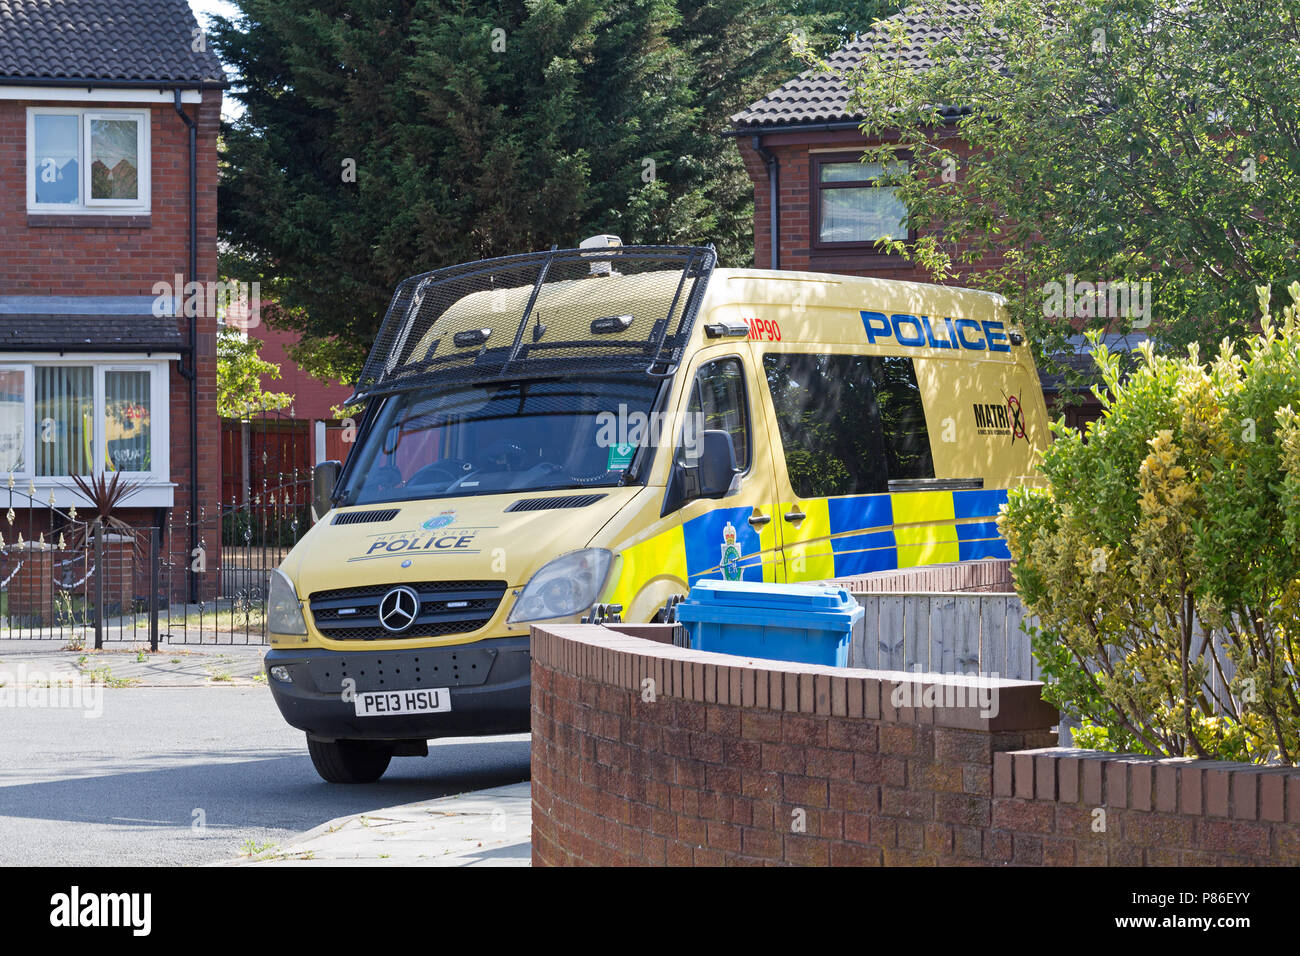 Liverpool, UK. 9th July 2018. Bomb disposal unit and Matrix police officers search a house in Micawber Close in the Toxtheth district of Liverpool. Merseyside Police confirm a suspicious package has been found at the property. Police have issued a statement: 'We are currently in attendance at a property in Toxteth.Officers executed a firearms warrant at Micawber Close at around 11.40pm on Saturday, 7th July, and following a search of the property have located a suspicious package, EOD have been called to the scene'. Credit: Ken Biggs/Alamy Live News. - Stock Image